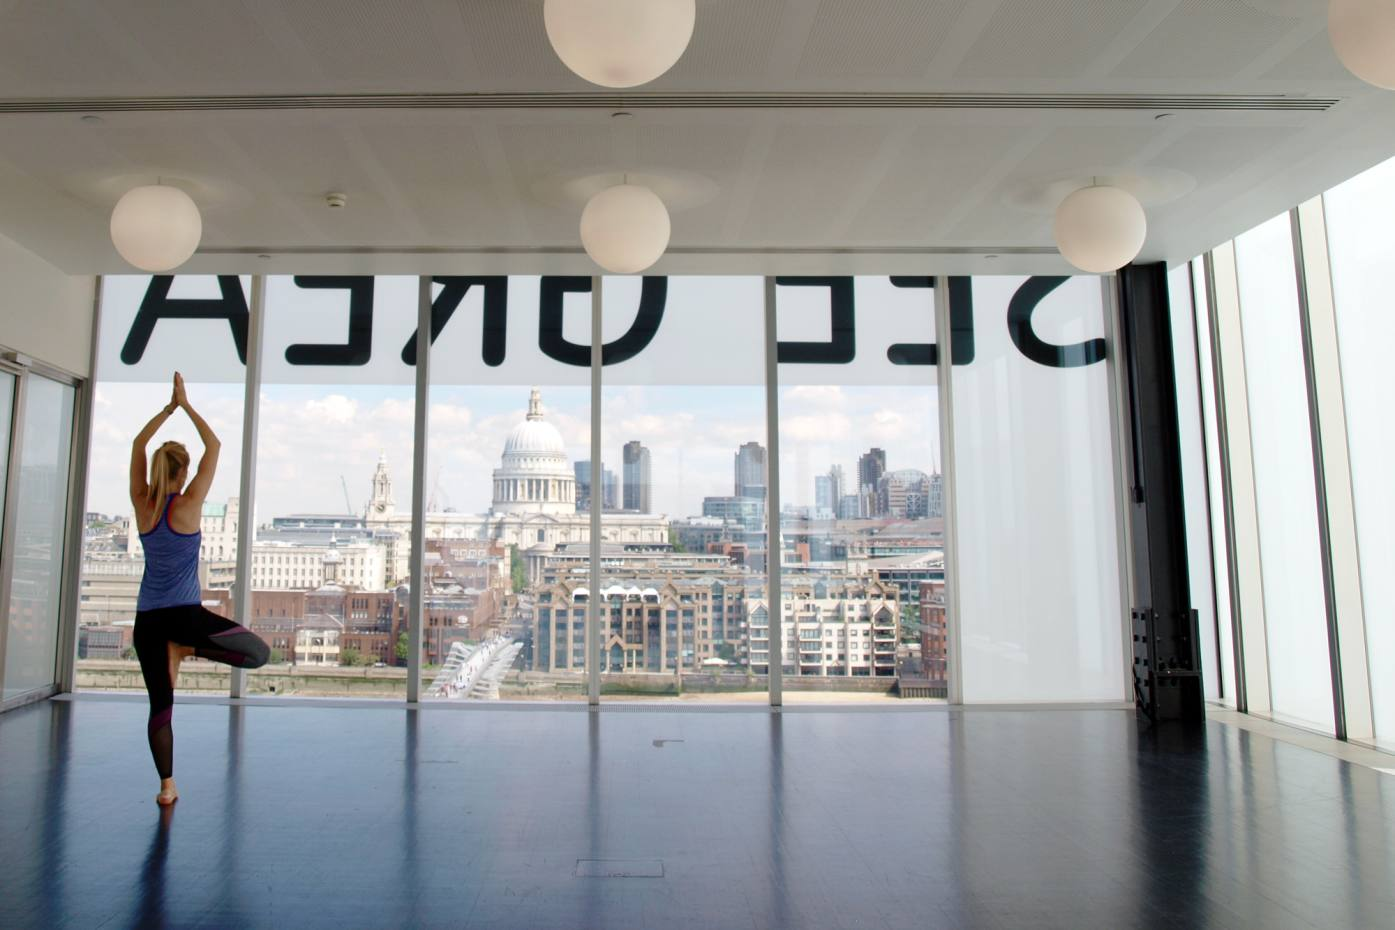 The yoga experience begins with classes, held in Tate Modern's East Room, which offers elevated vistas of London's cityscape